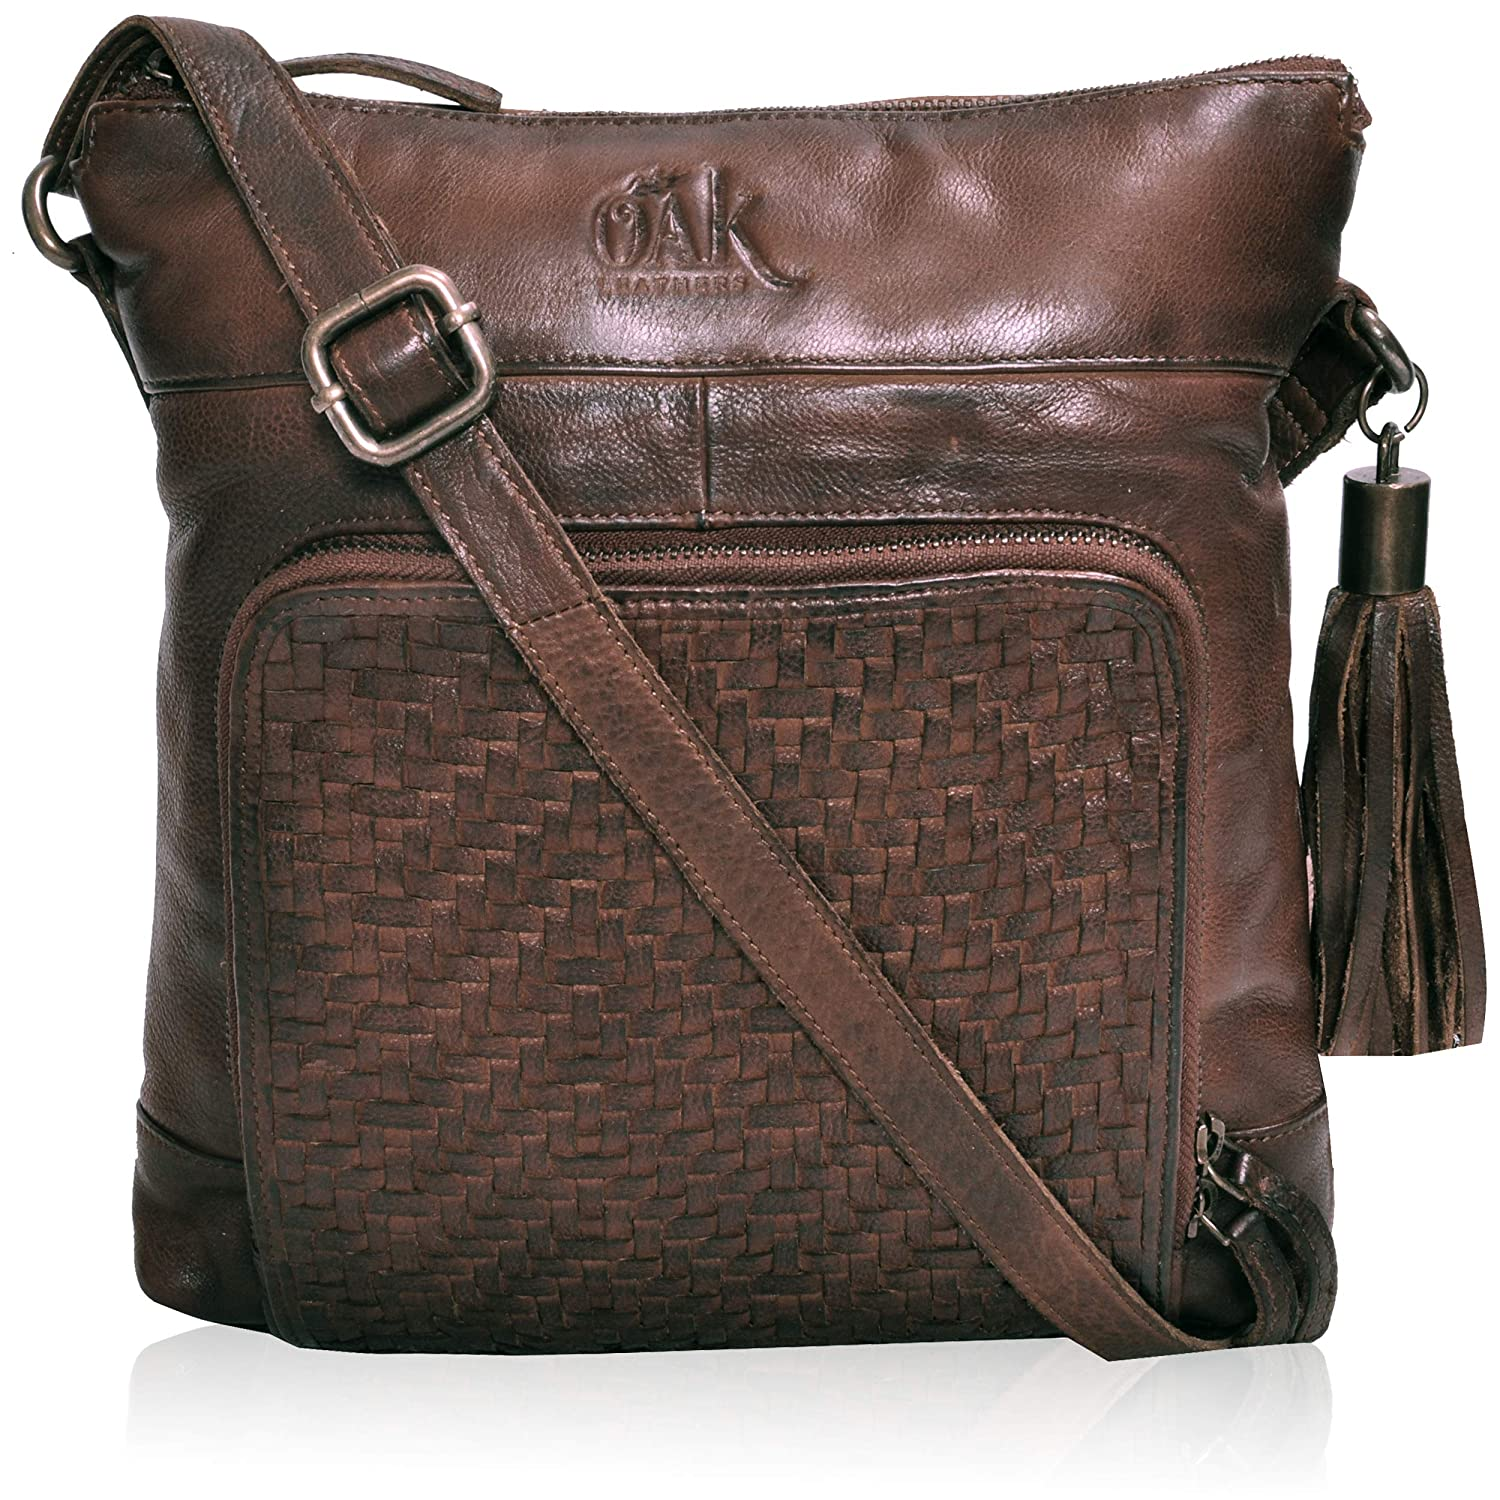 Brown Washed Leather Crossbody Bags for WomenCrossbody purse for women Leather Crossbody purse Small Crossbody Bag Travel crossbody